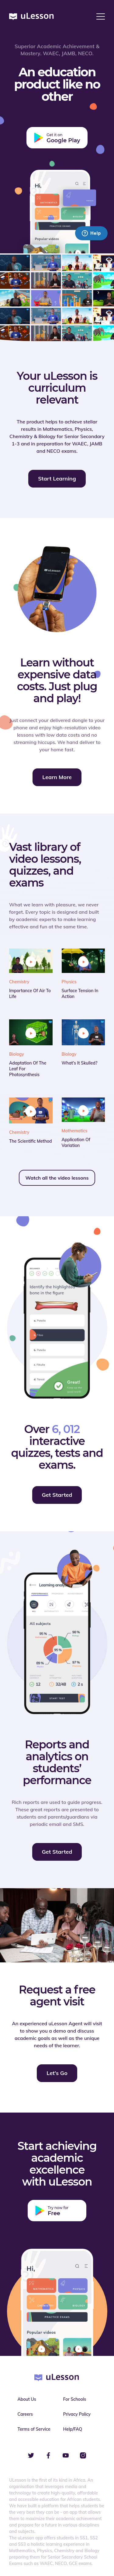 Example of Design for Jobs & Education, Education, Standardized & Admissions Tests, Mobile Landing Page by ulesson.com | Mobile Landing Page Design